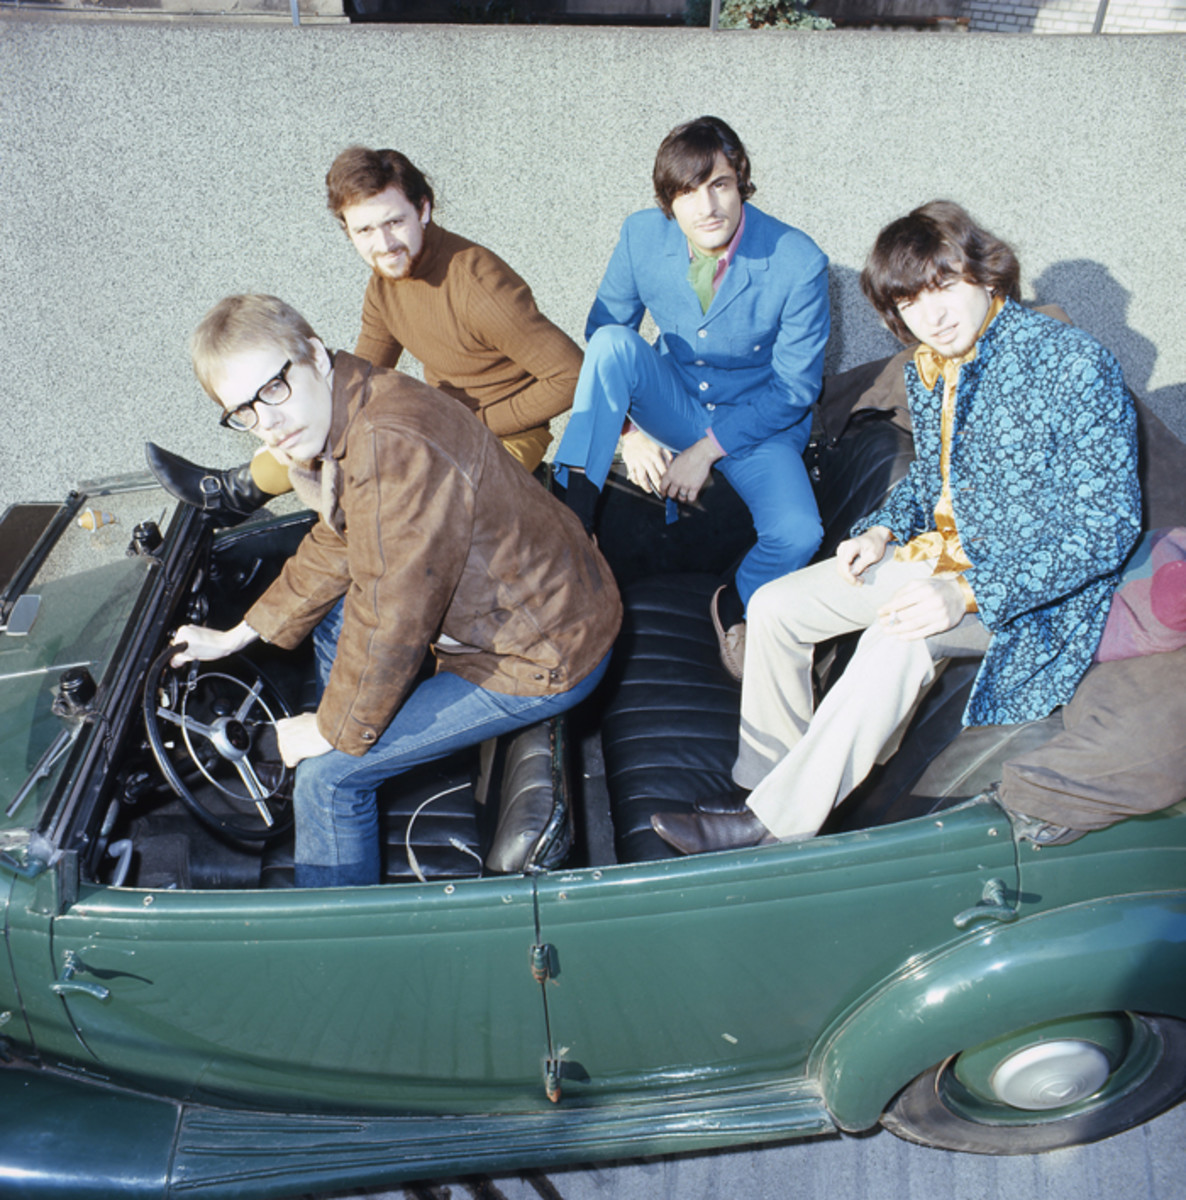 Vanilla Fudge posed in an open top car by Alster Lake, Hamburg, Germany in 1968 (Photo by Gunter Zint/K & K Ulf Kruger OHG/Redferns)